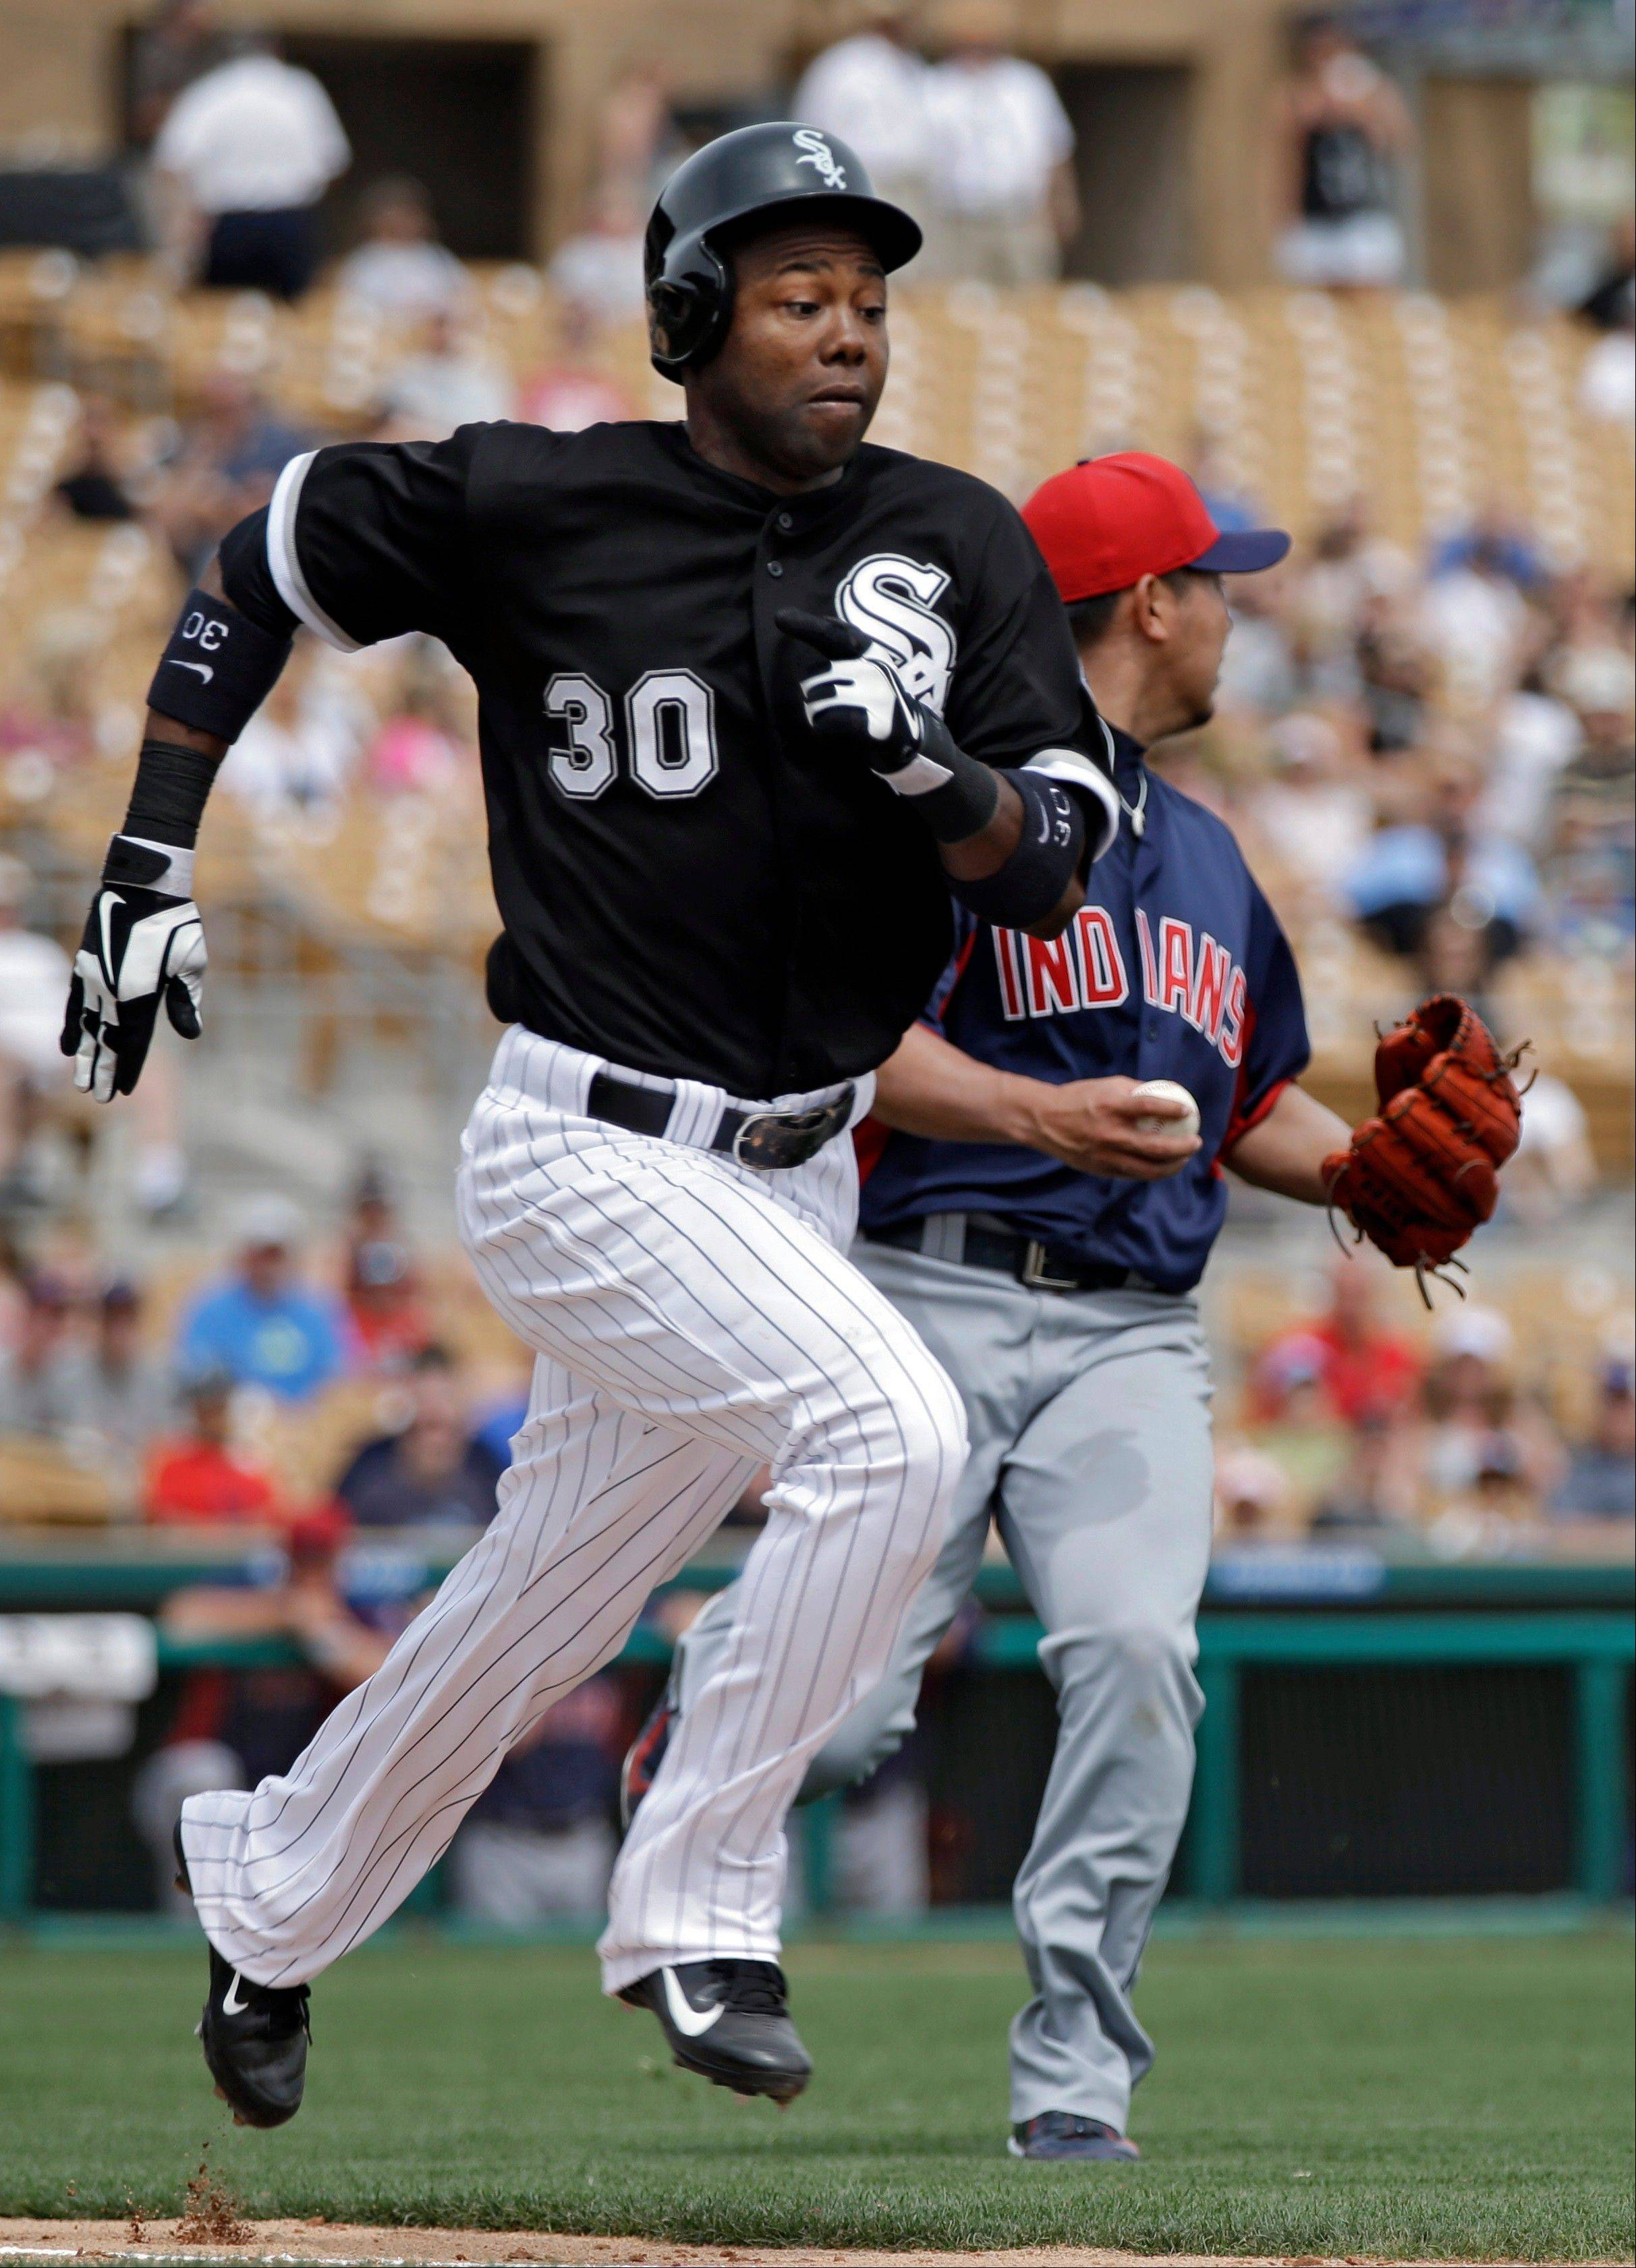 Chicago White Sox's Alejandro De Aza (30) races to first past Cleveland Indians starting pitcher Daisuke Matsuzaka on an RBI bunt single in the fifth inning of a spring training baseball game Wednesday, March 27, 2013, in Glendale, Ariz.